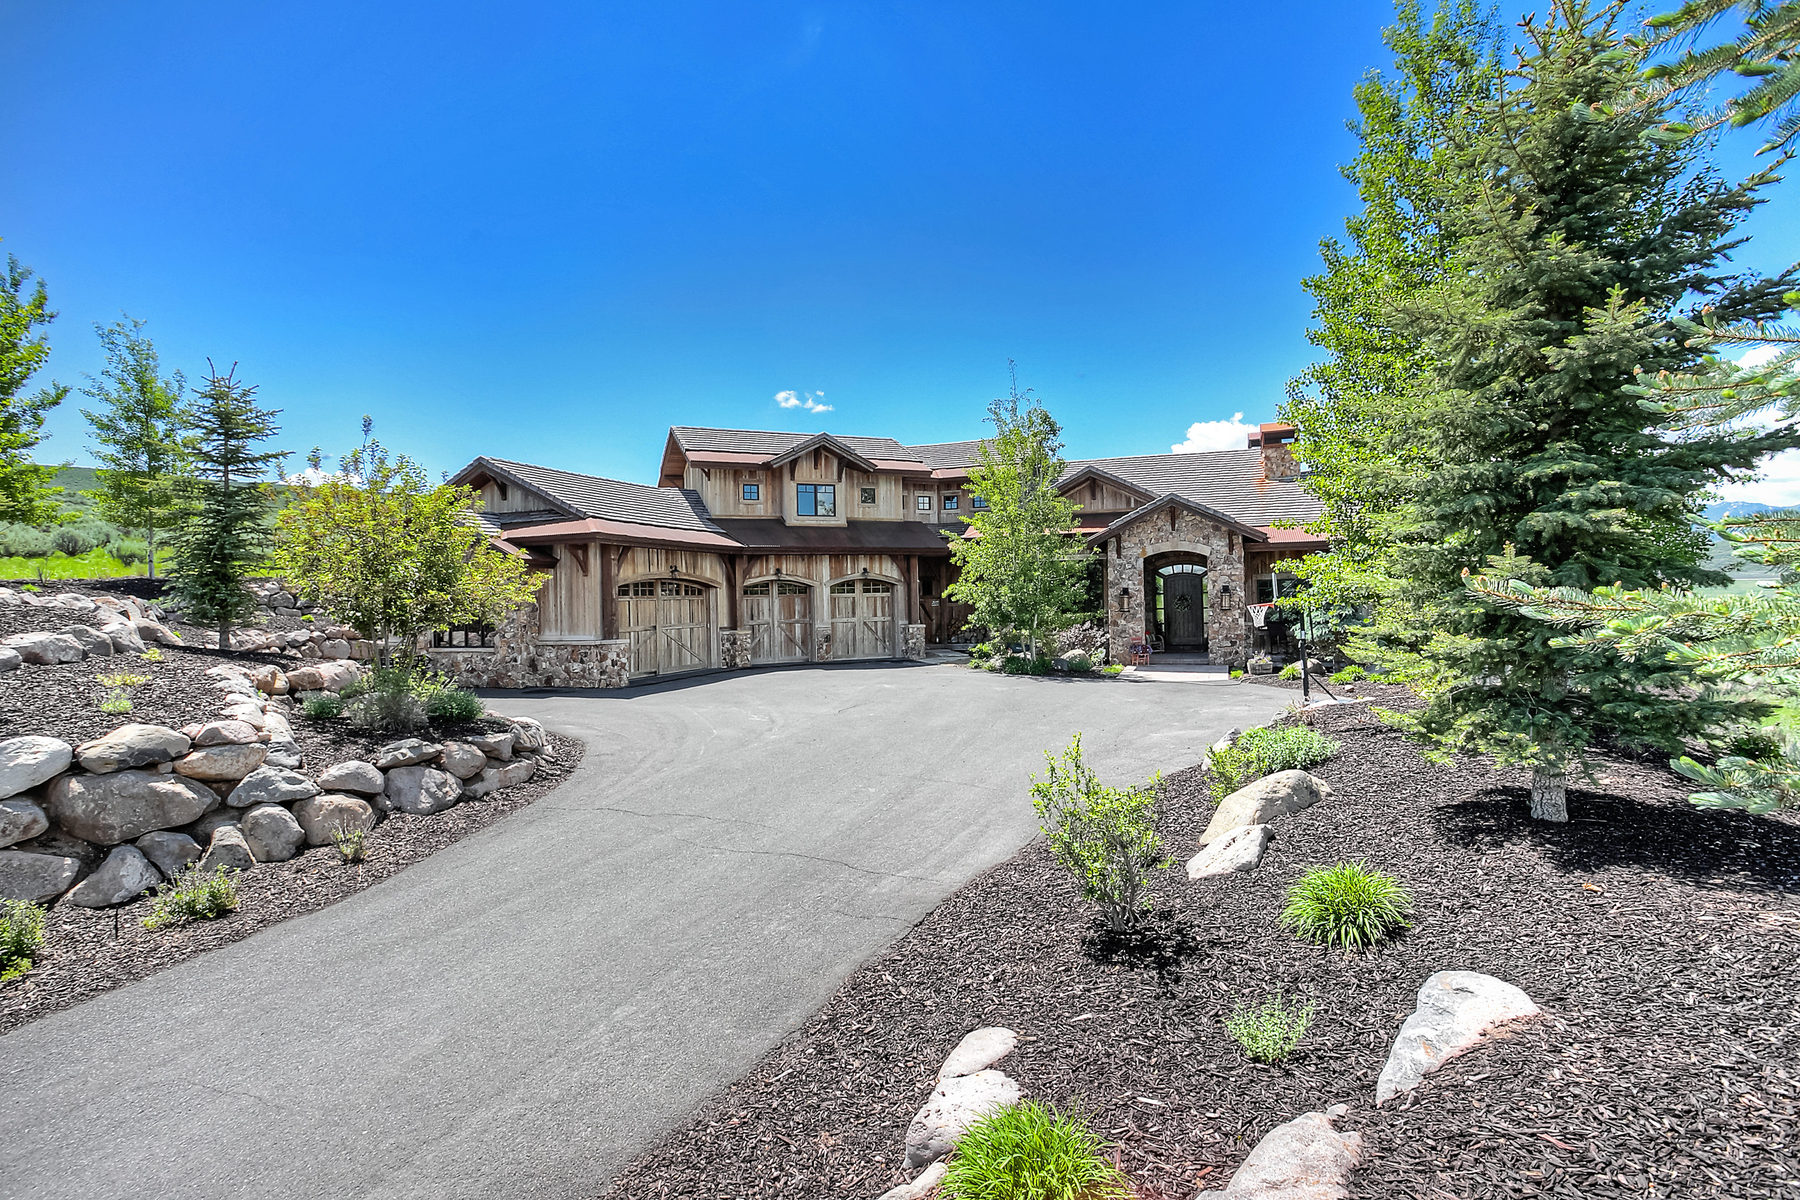 Maison unifamiliale pour l Vente à Distinctive Mountain Estate 2640 Cody Trail Park City, Utah 84098 États-Unis